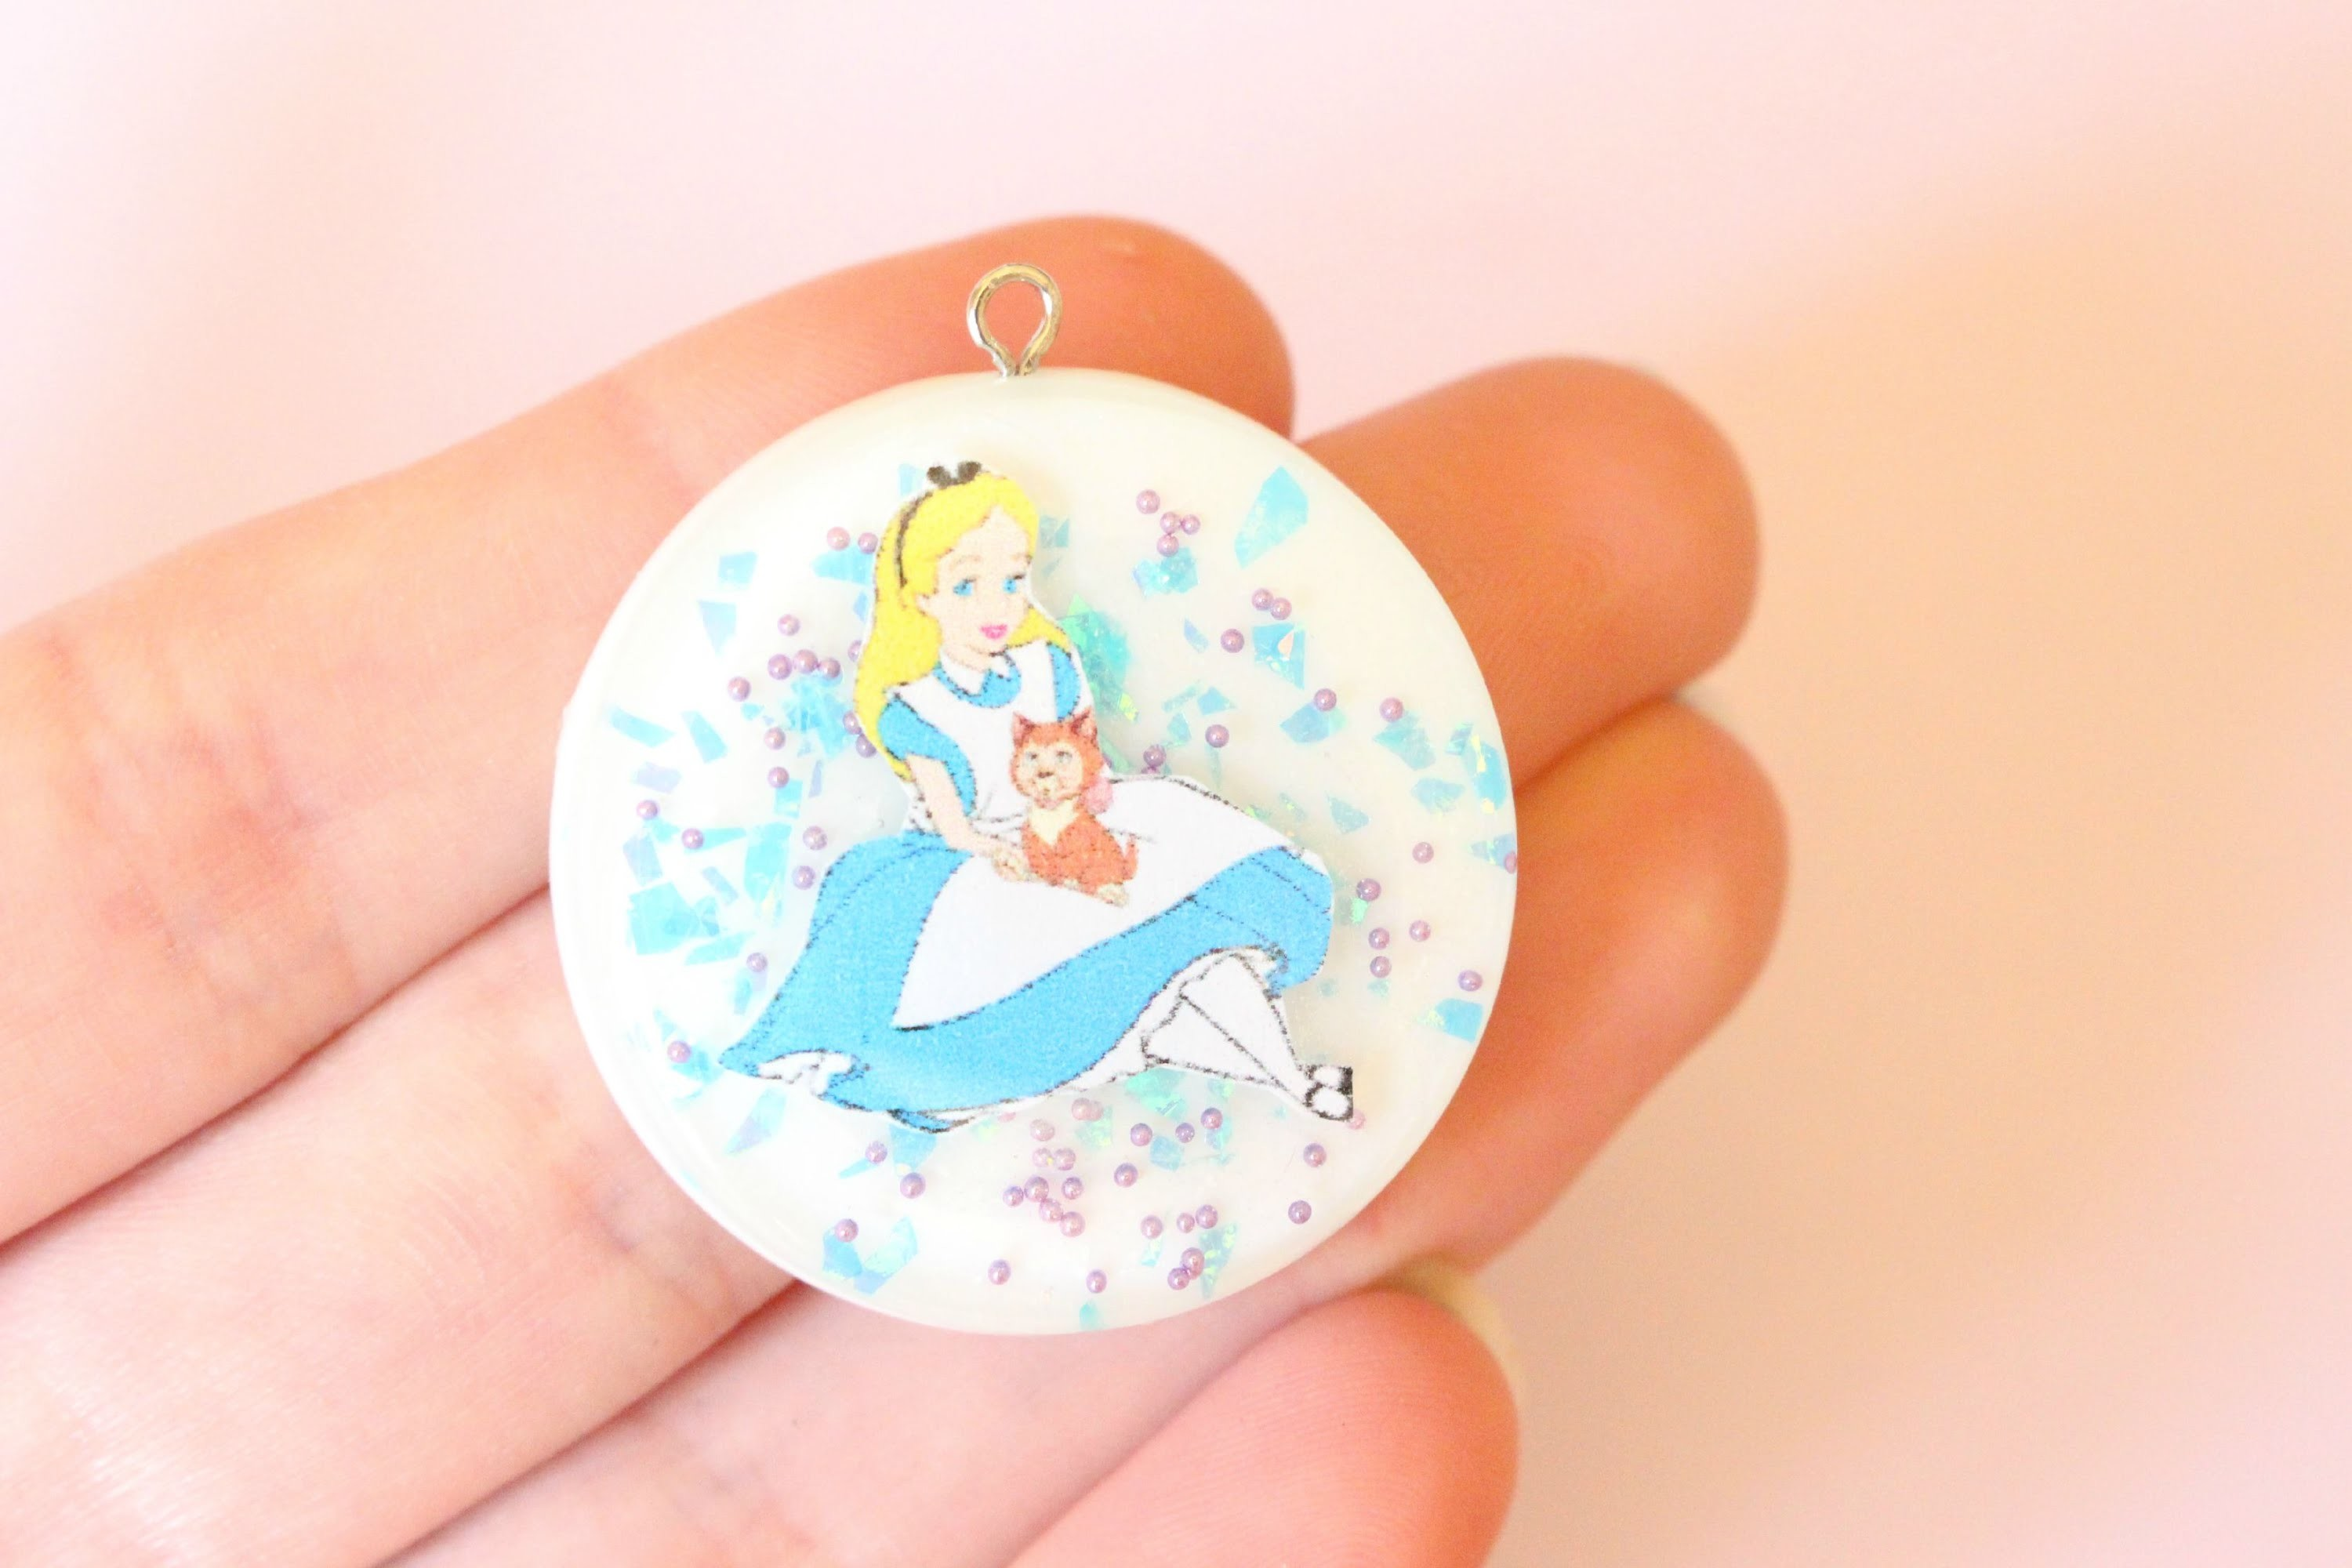 Alice in wonderland resin charm - tutorial